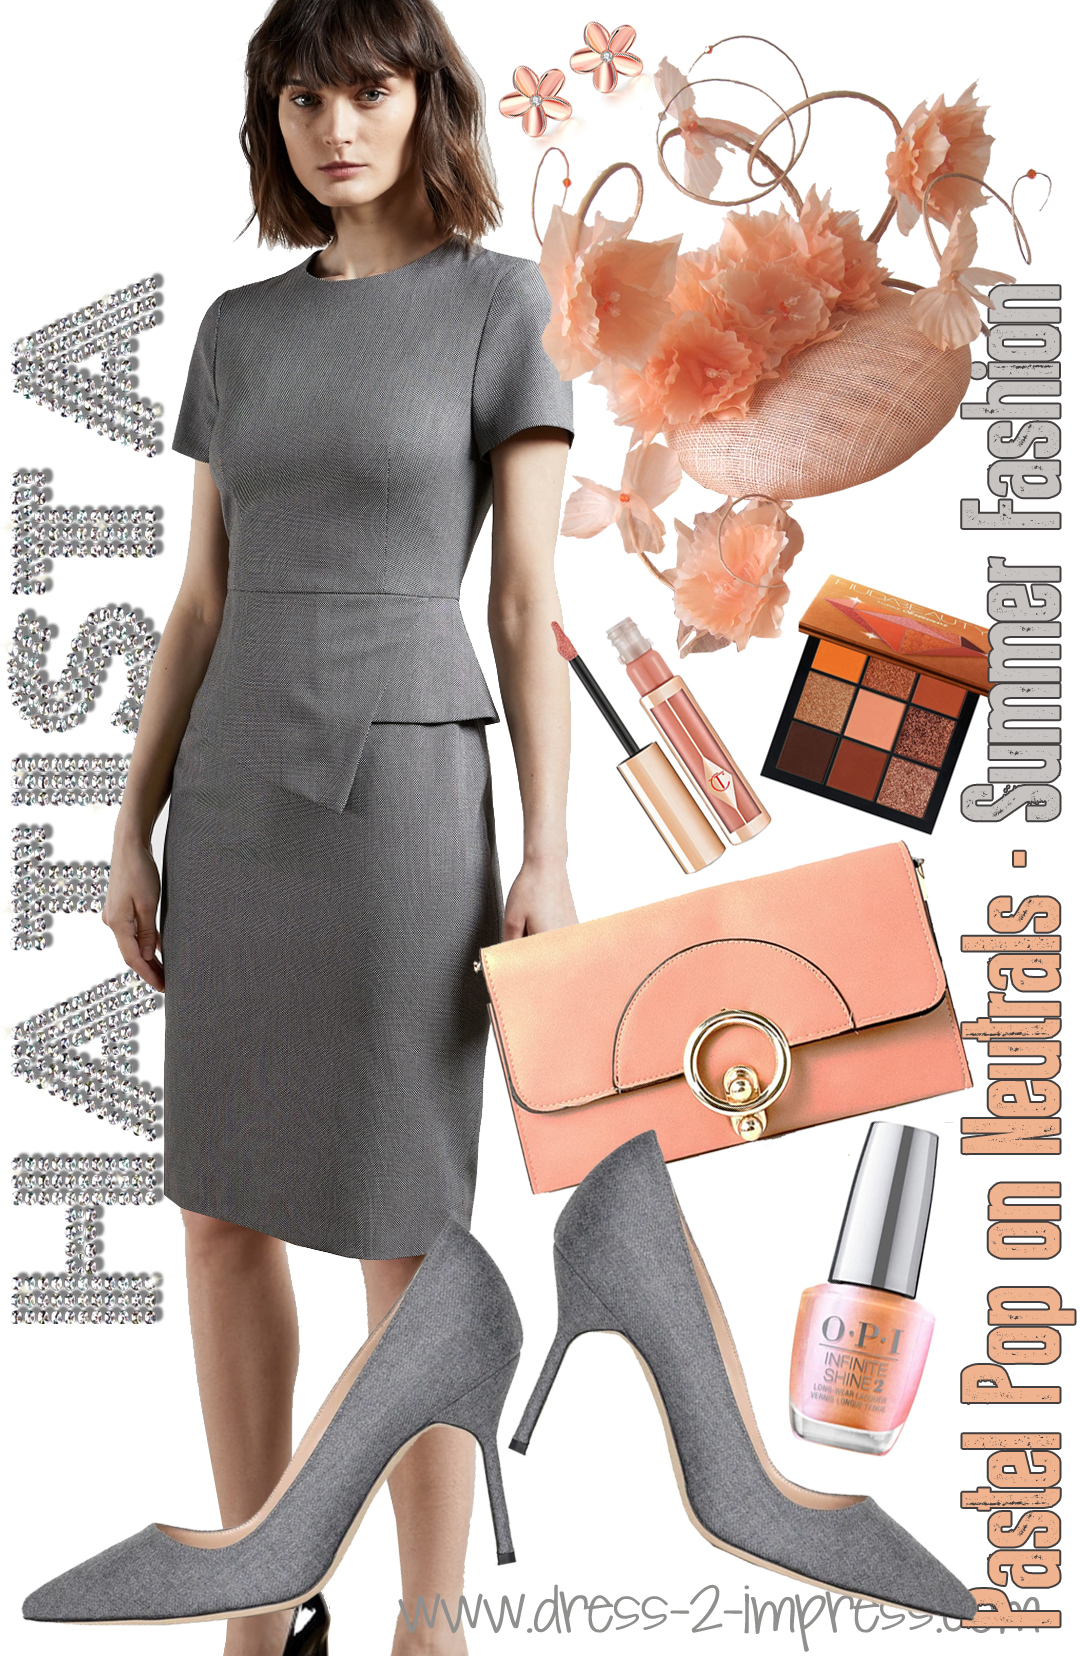 How to wear Pastels 2021. What to wear to for Royal Ascot 2021. Peach Mother of the Bride Fascinator 2021. How to wear Pastel Colours 2021. Peach Mother of the Bride Hat 2021. Peach Royal Ascot Hat 2021. Outfit ideas with Peach 2021. Peach fashion ideas 2021. Manolo Blahnik Grey Shoes 2021. What colours go with Peach. Peach and Grey outfits 2021.